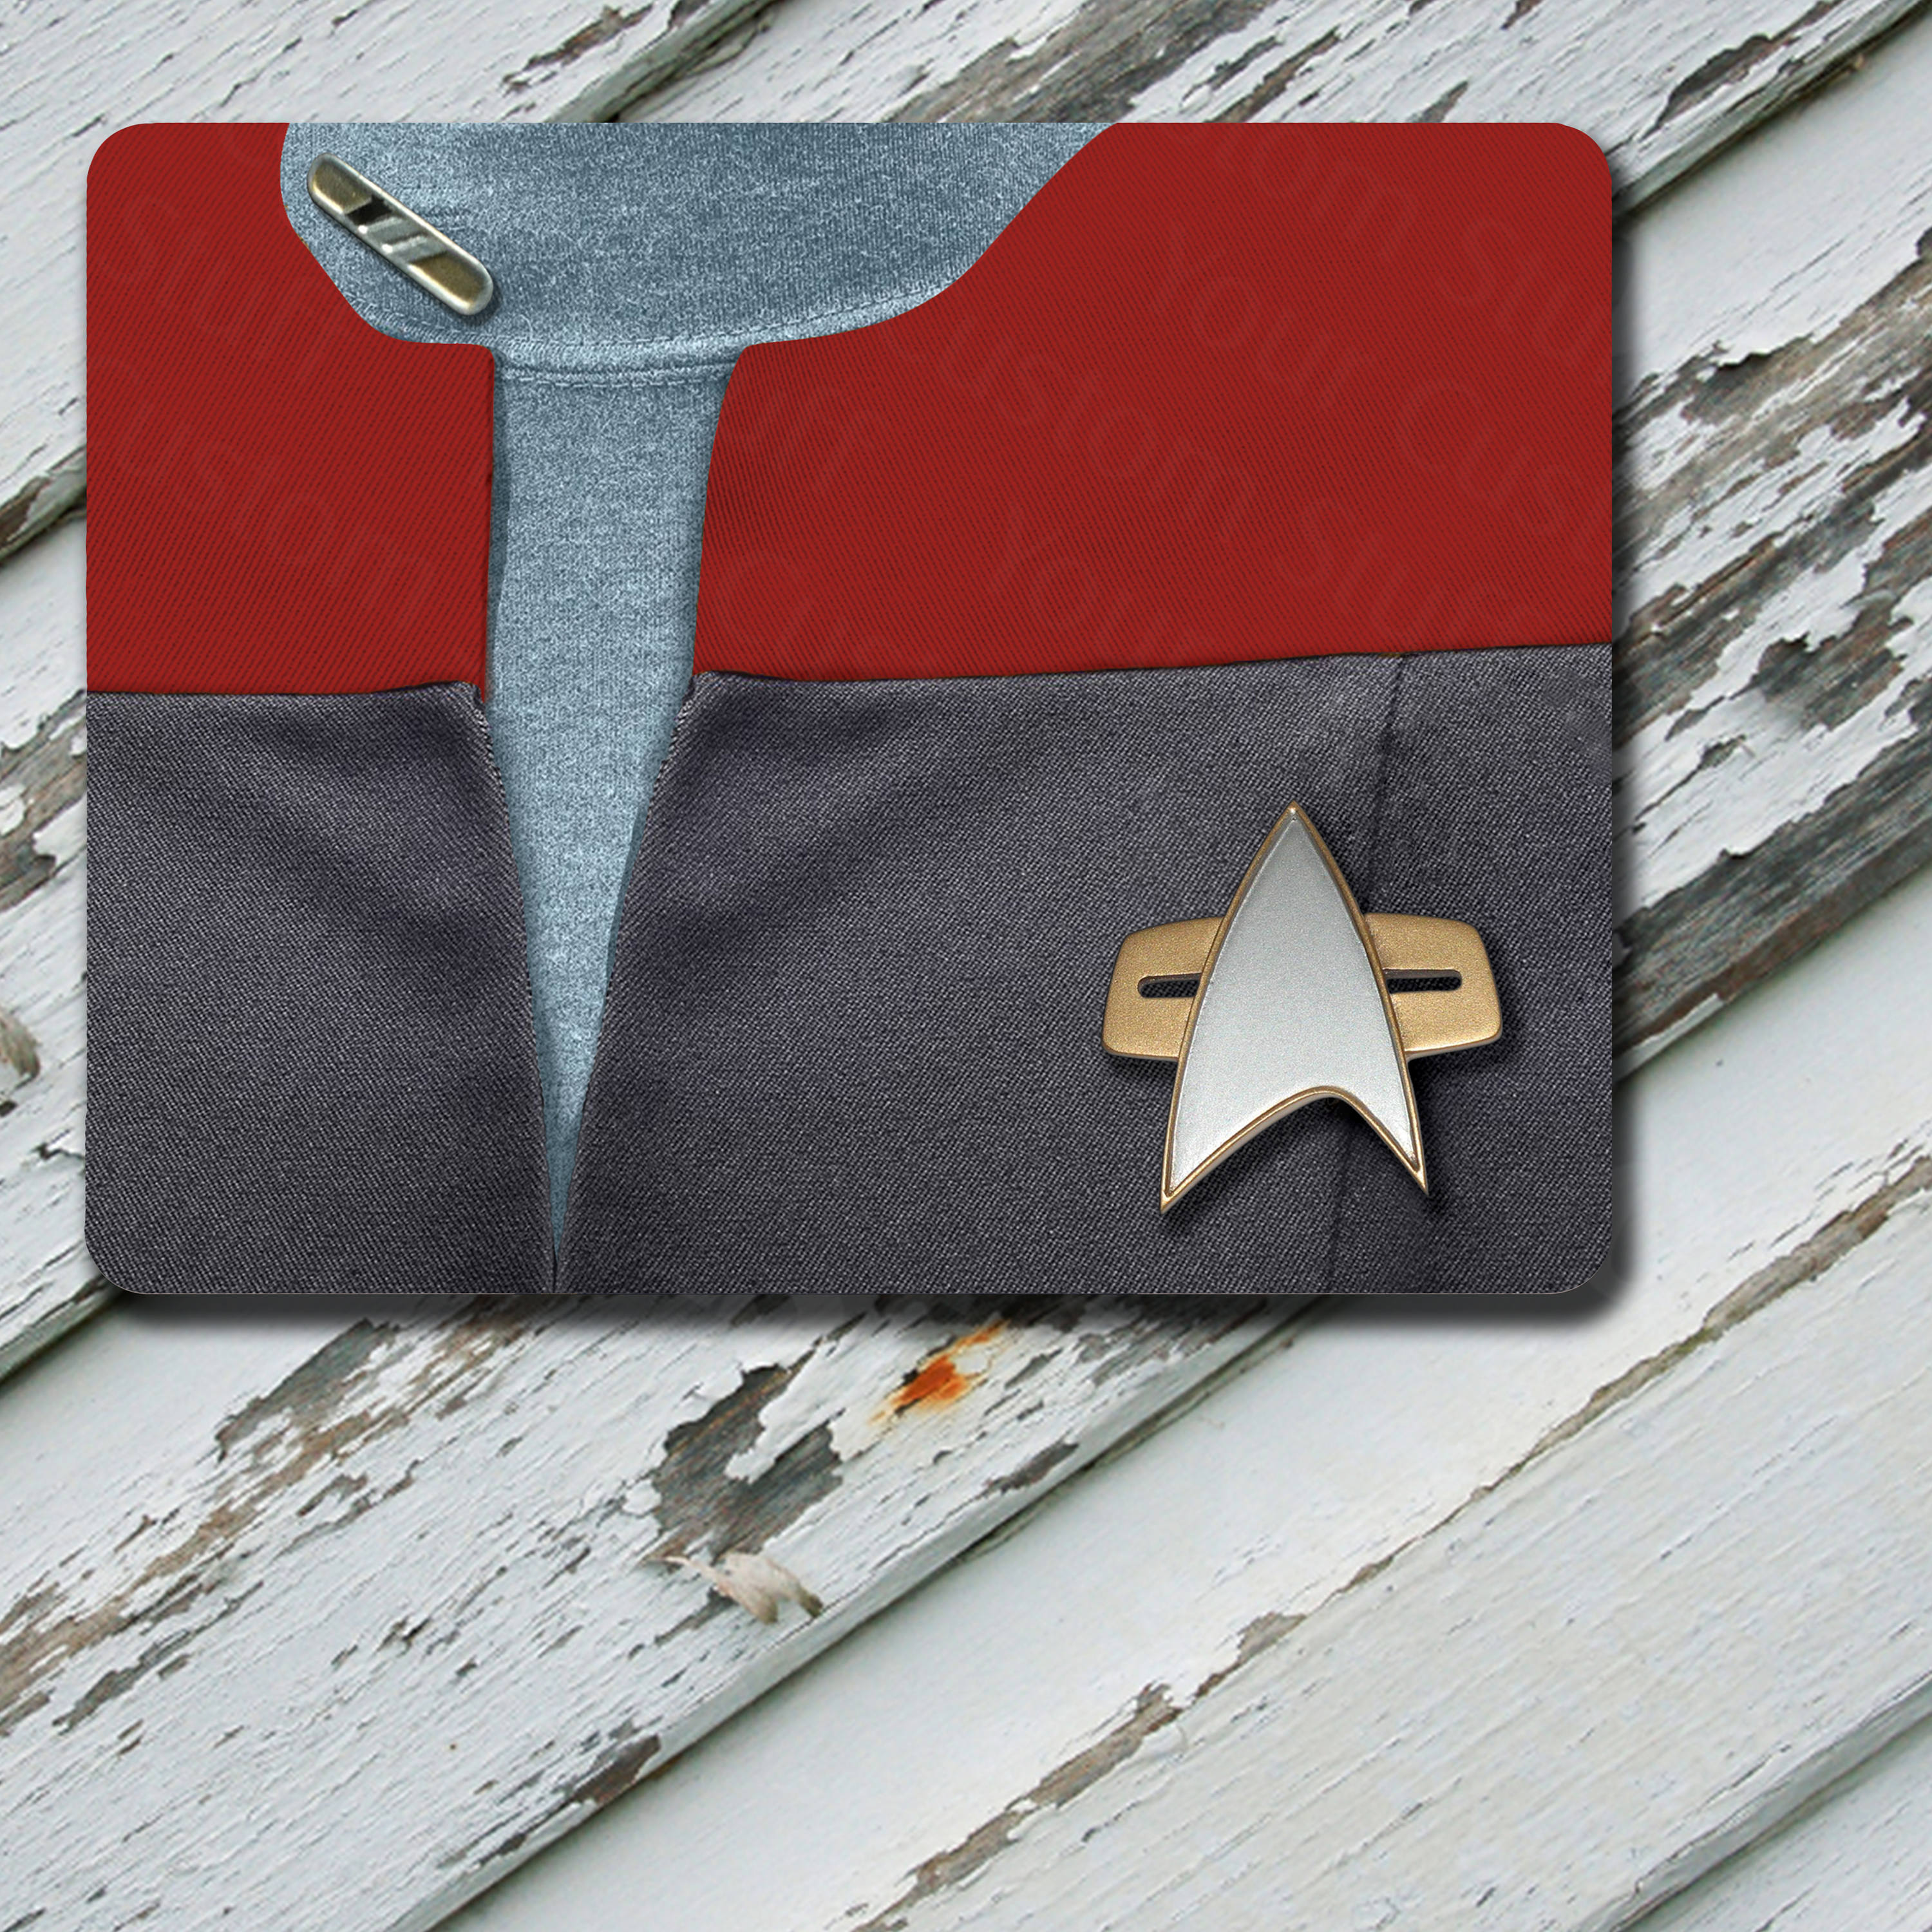 Mousepad Star Trek Voyager VOY Command Pips Commander Chakotay Uniform Uniform Red Fabric Pattern on Mousepad